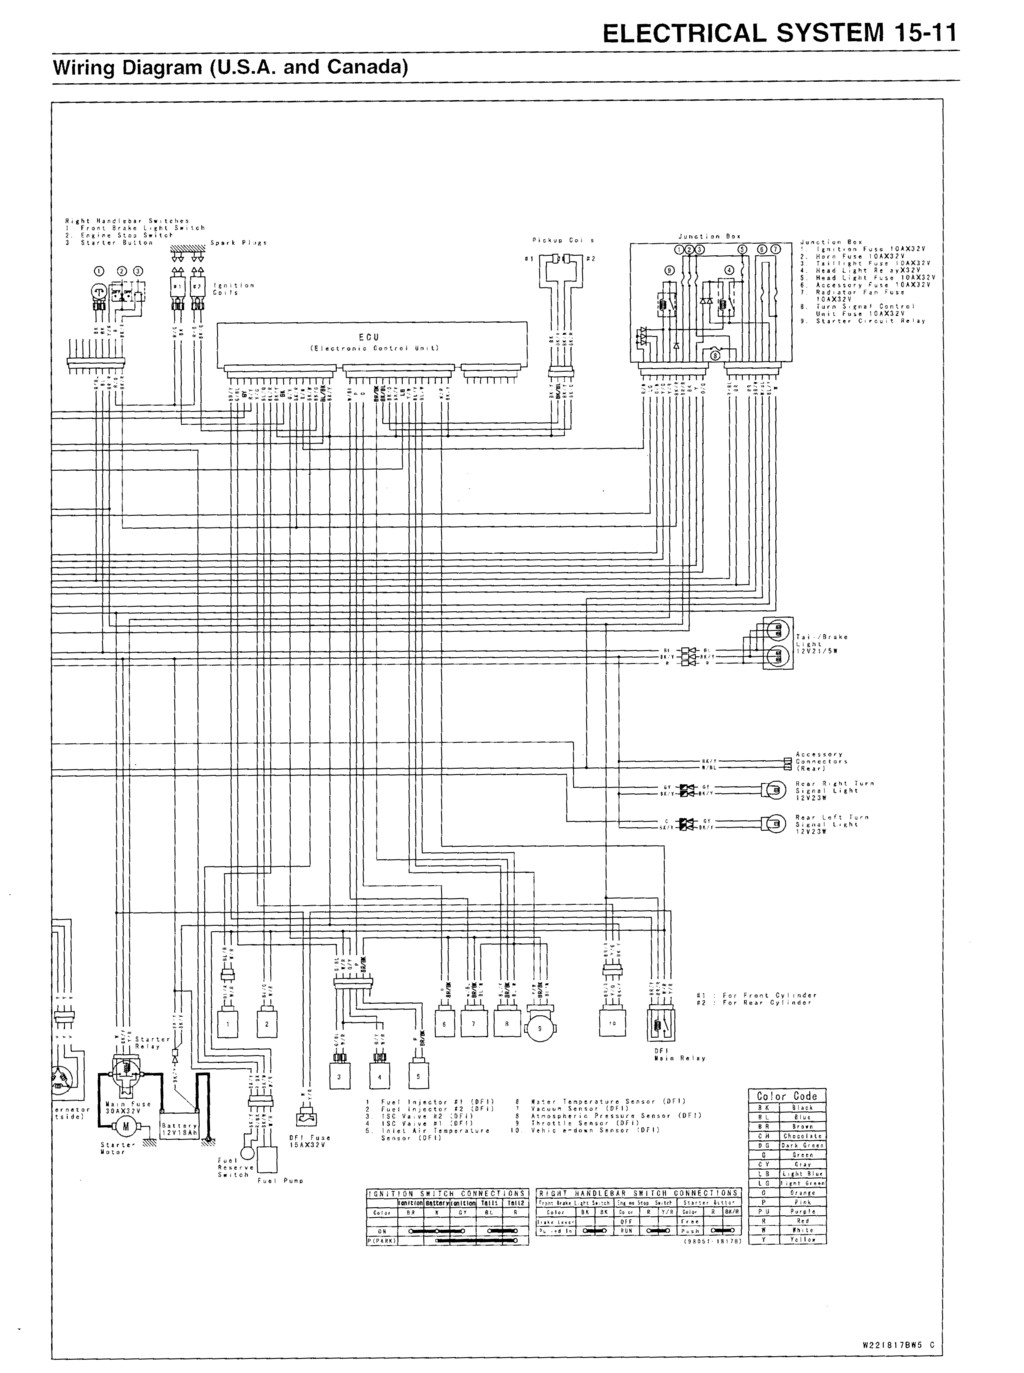 Wiring Diagram Kawasaki Vulcan 800 - 14.2.asyaunited.de • on 2000 sterling wiring diagrams, 2000 infiniti wiring diagrams, 2000 ford wiring diagrams, 2000 arctic cat wiring diagrams, 2000 saturn wiring diagrams,